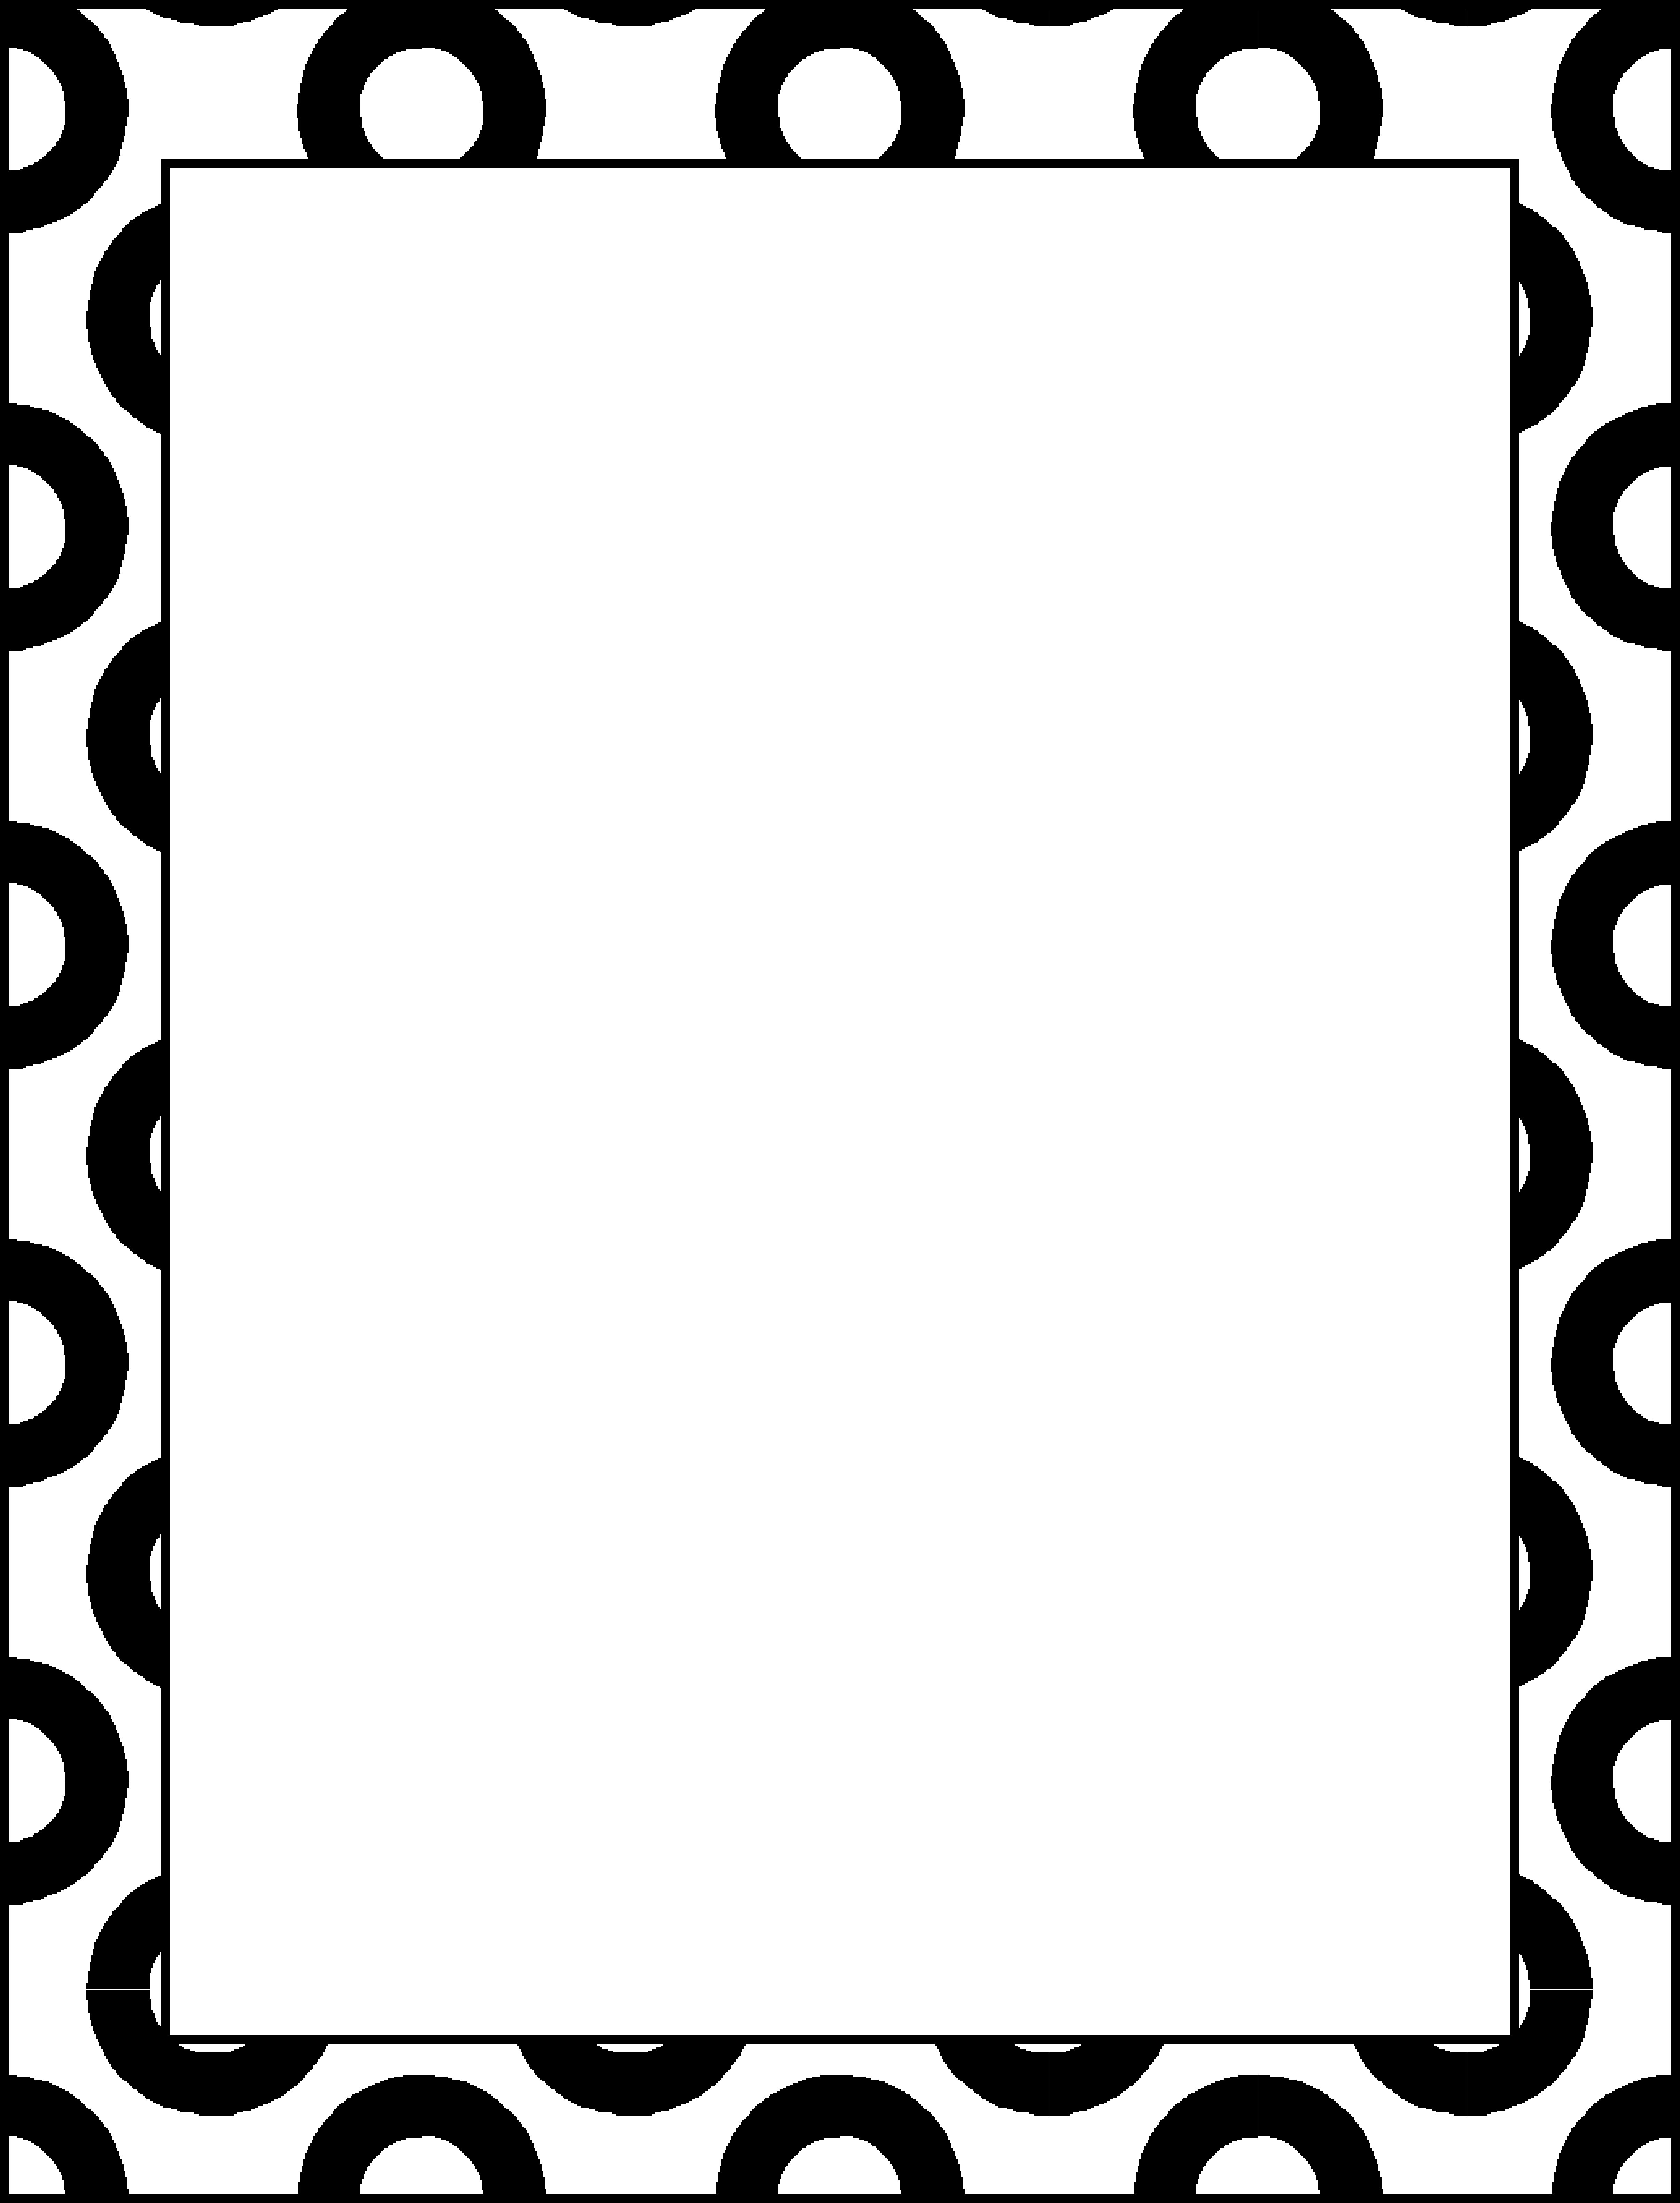 Simple Line Art Borders : Simple line border clipart panda free images